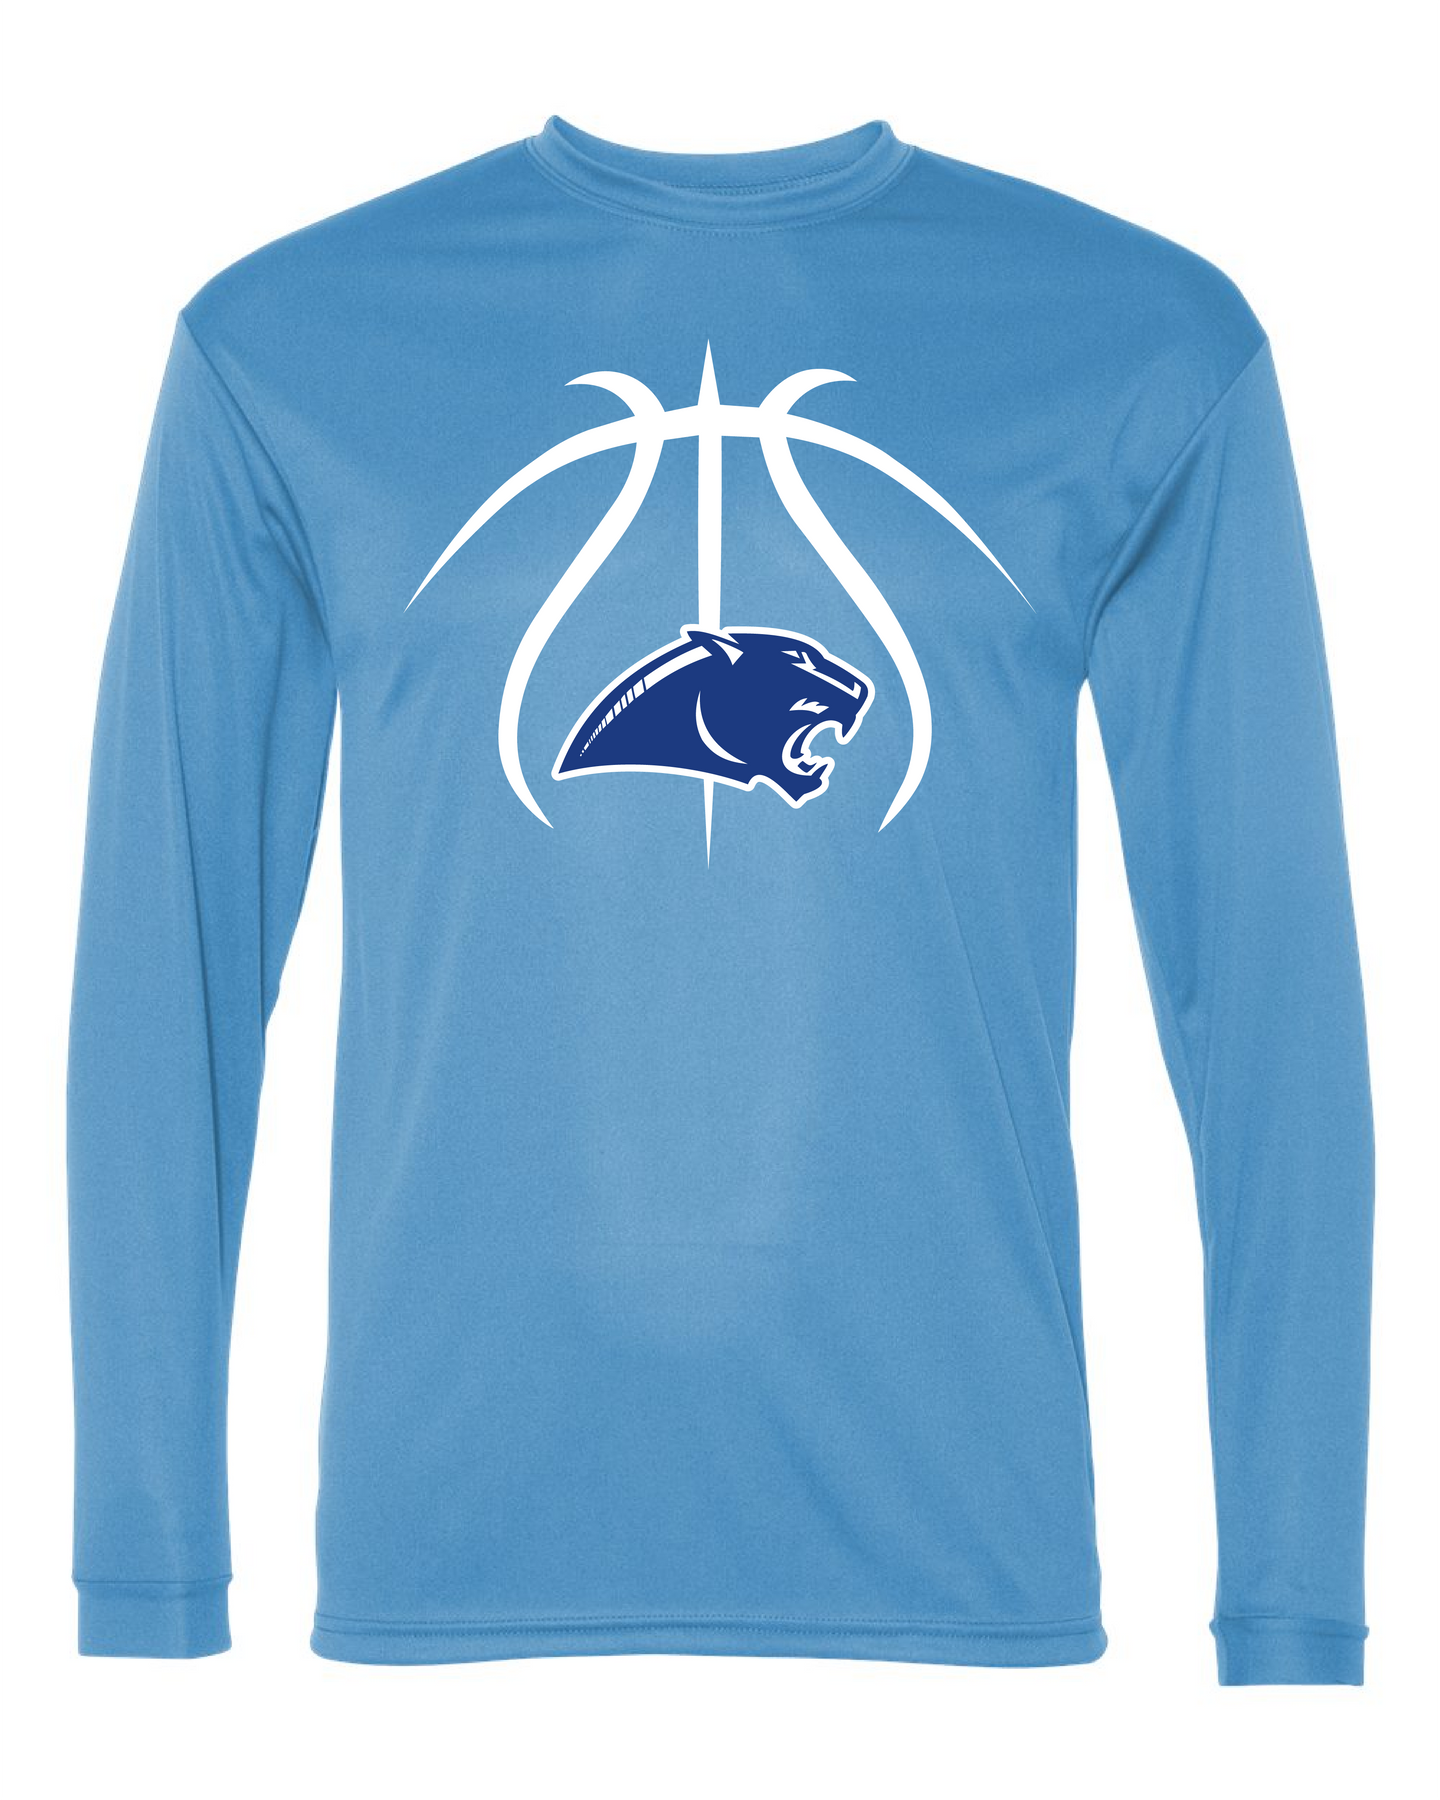 2019-20 Panorama Girls BB Team Shirt-C2 Sport - Performance Long Sleeve T-Shirt - 5104